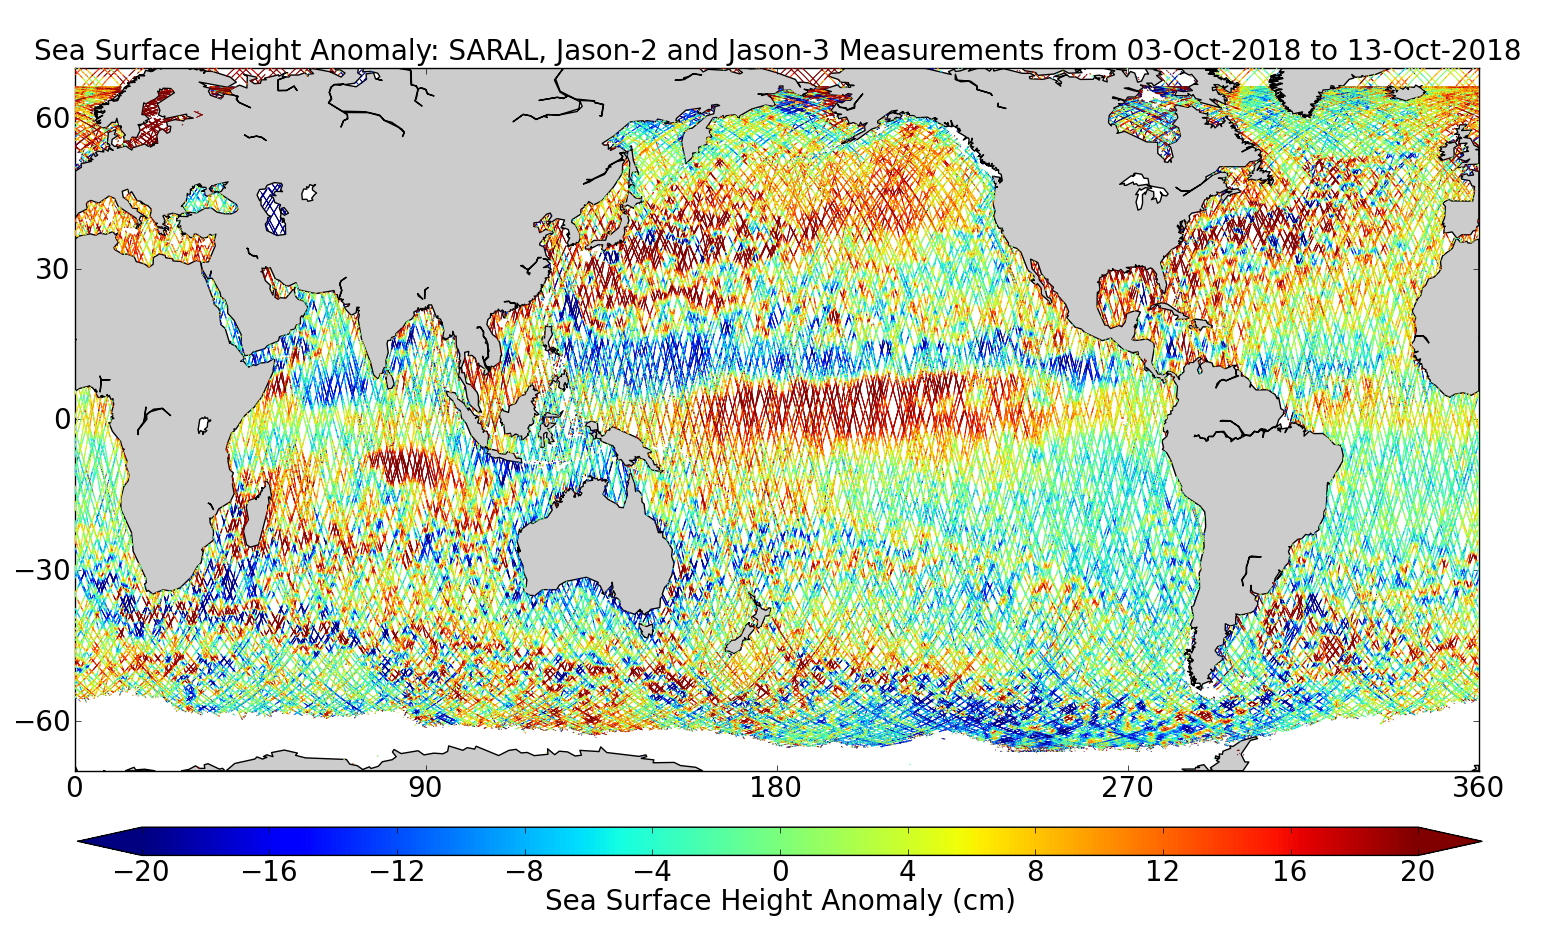 Sea Surface Height Anomaly: SARAL, Jason-2 and Jason-3 Measurements from 03-Oct-2018 to 13-Oct-2018